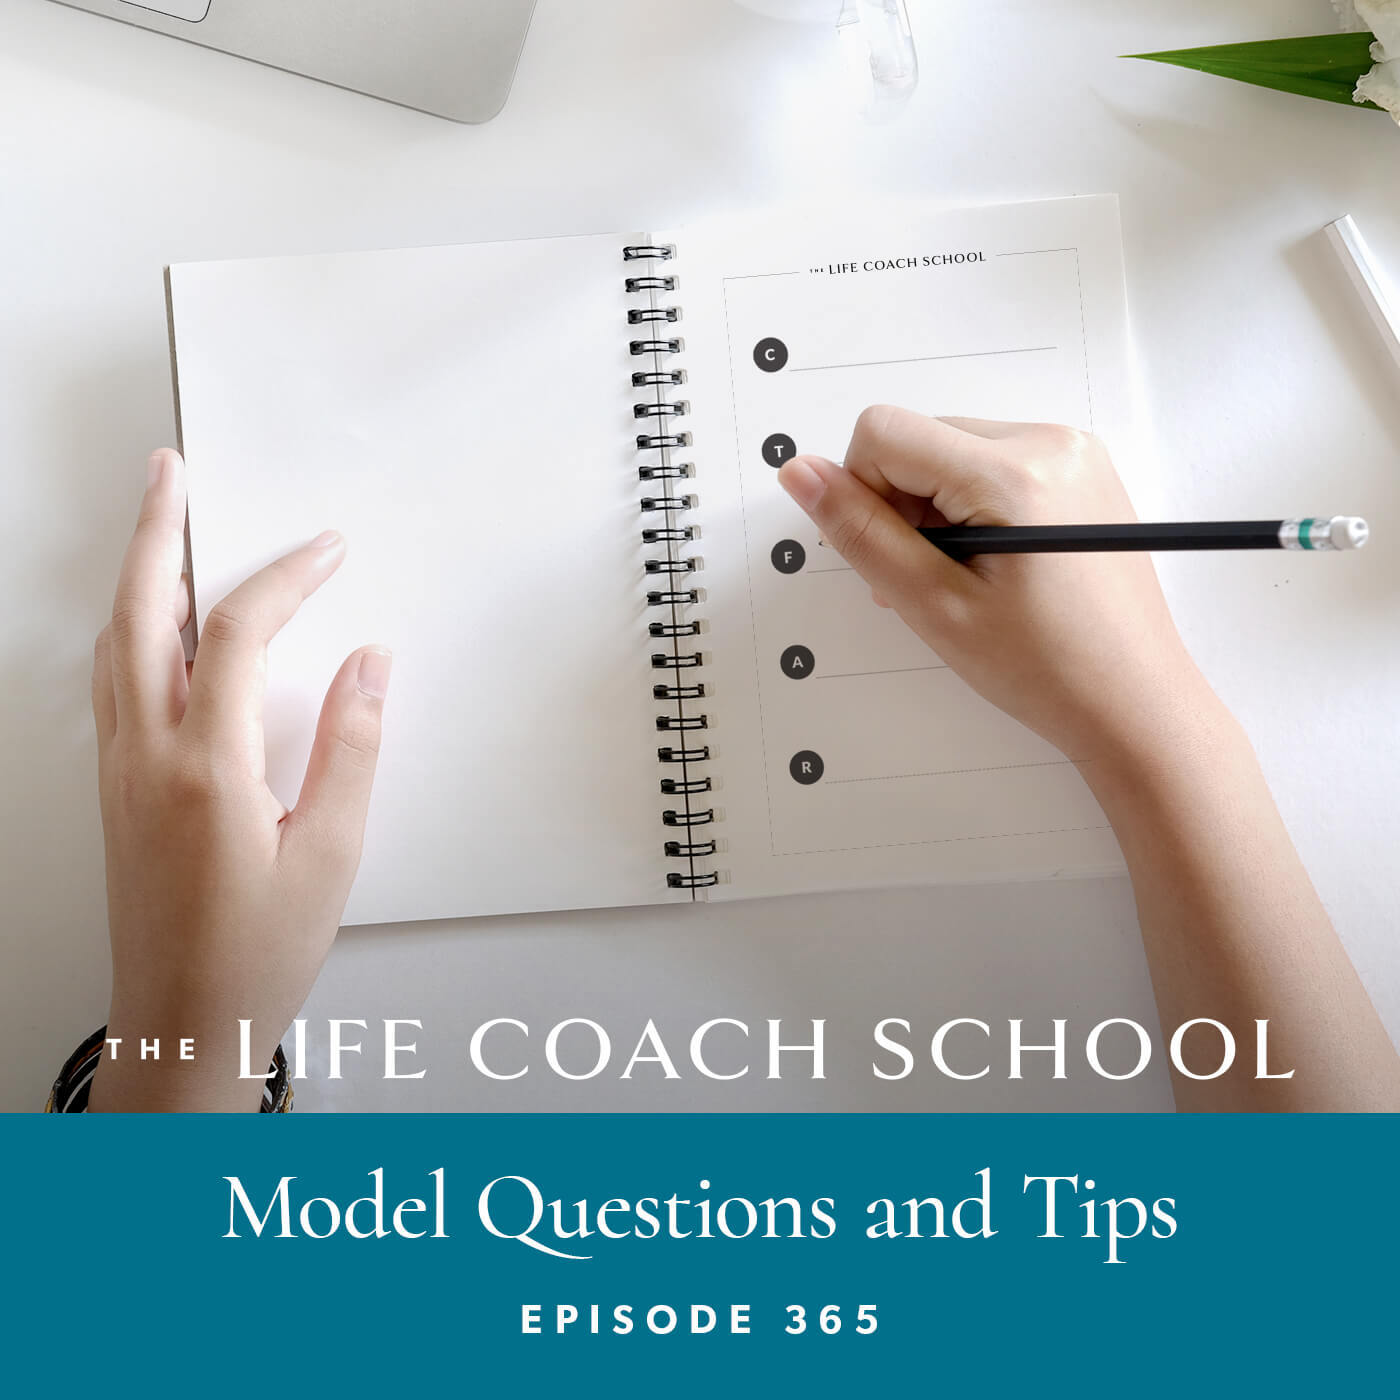 Model Questions and Tips